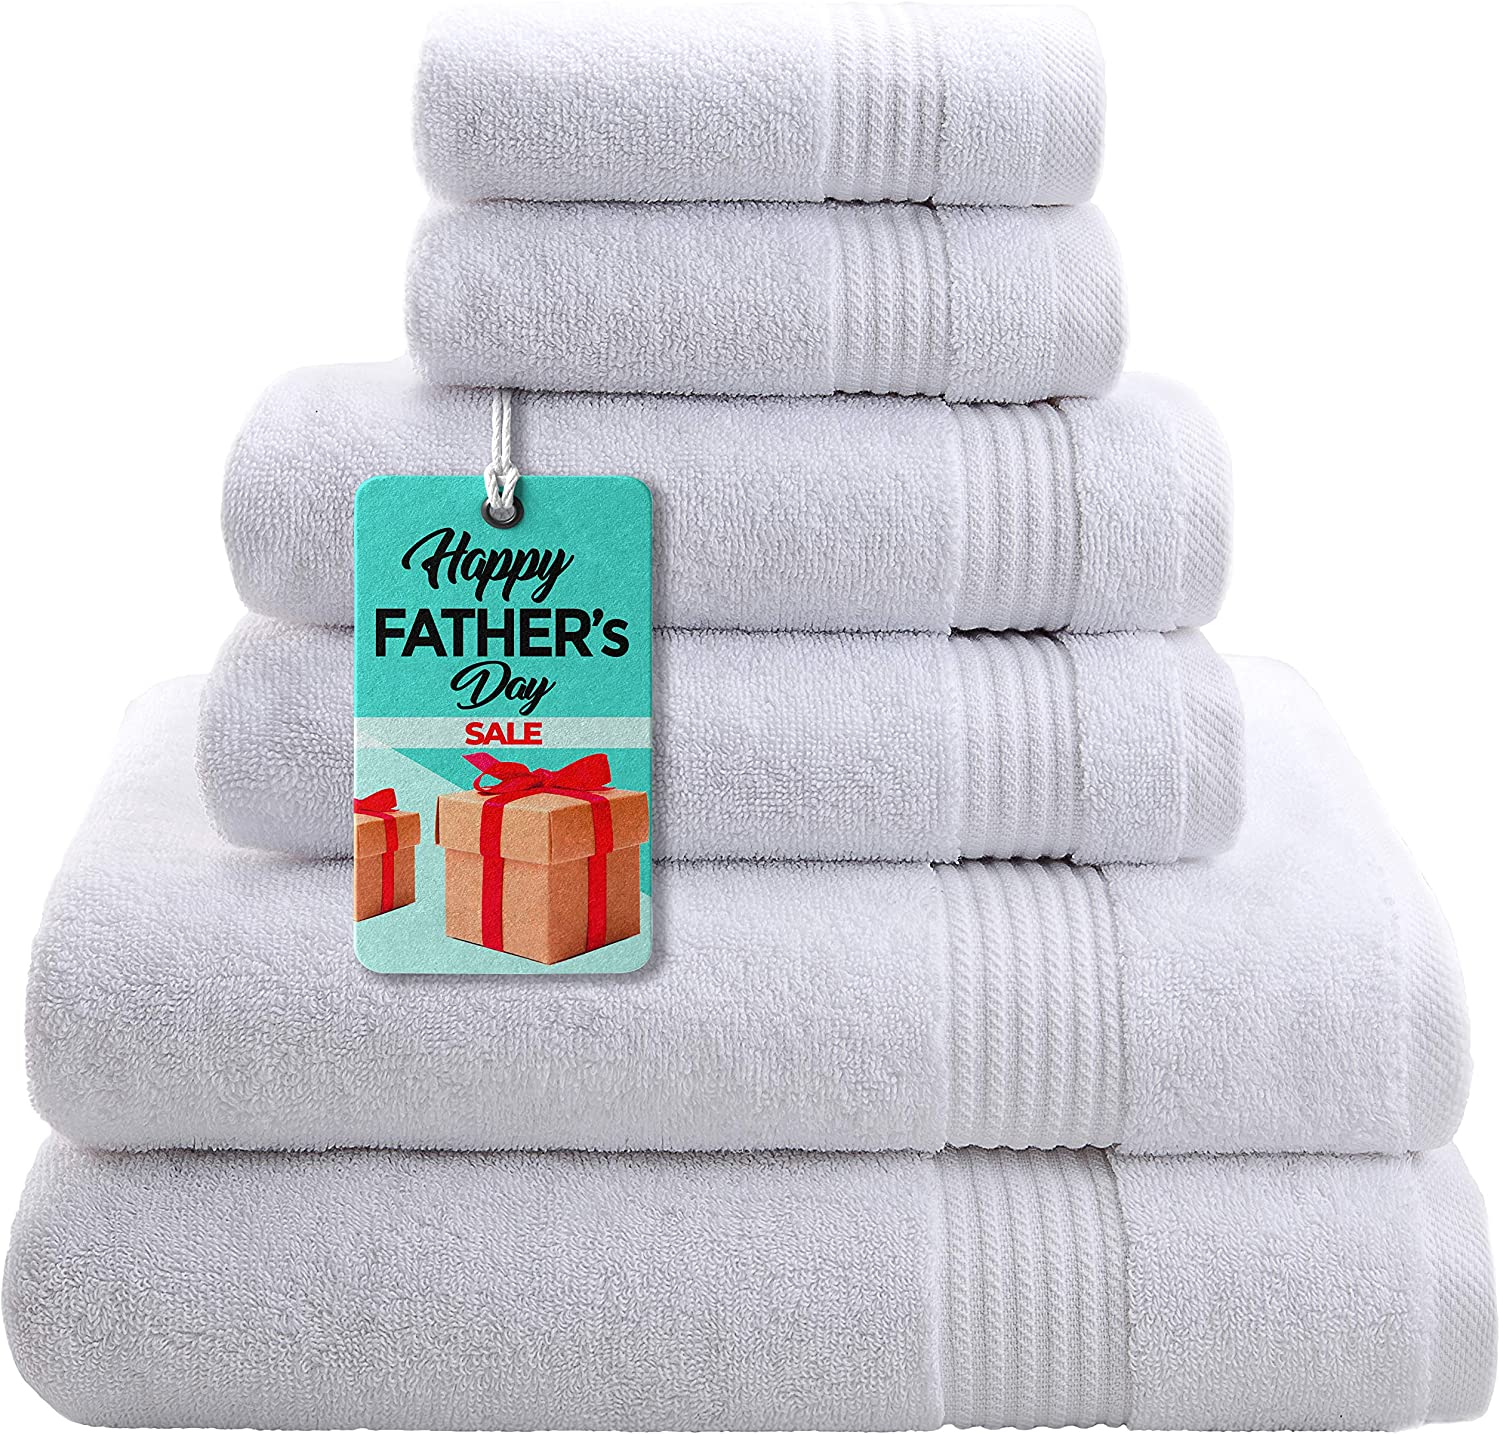 Hotel & Spa Quality, Absorbent and Soft Decorative Kitchen and Bathroom Sets, Cotton, 6 Piece Turkish Towel Set, Includes 2 Bath Towels, 2 Hand Towels, 2 Washcloths, Snow White